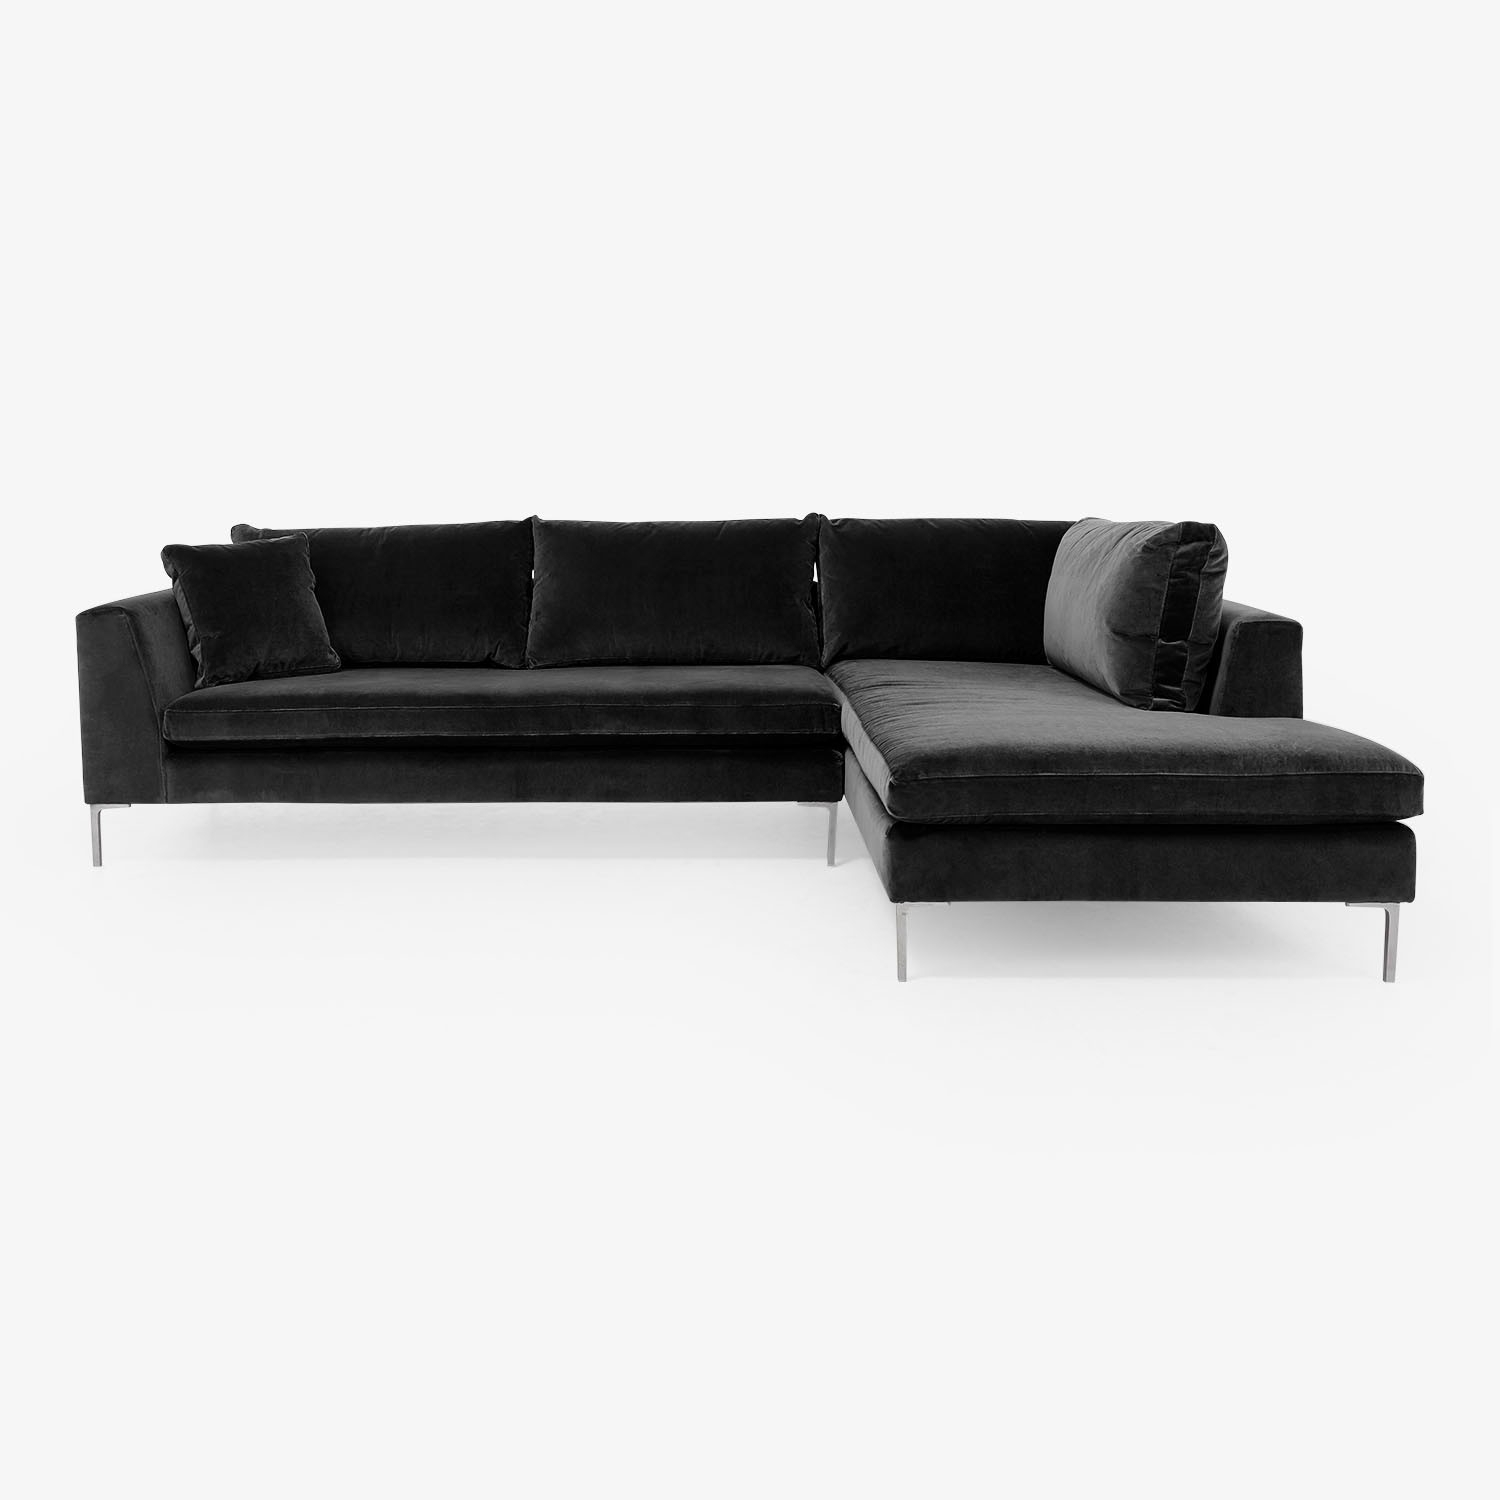 Modern Sectional Sofas For Apartments At Abc Home & Carpet In Harper Down 3 Piece Sectionals (View 17 of 25)